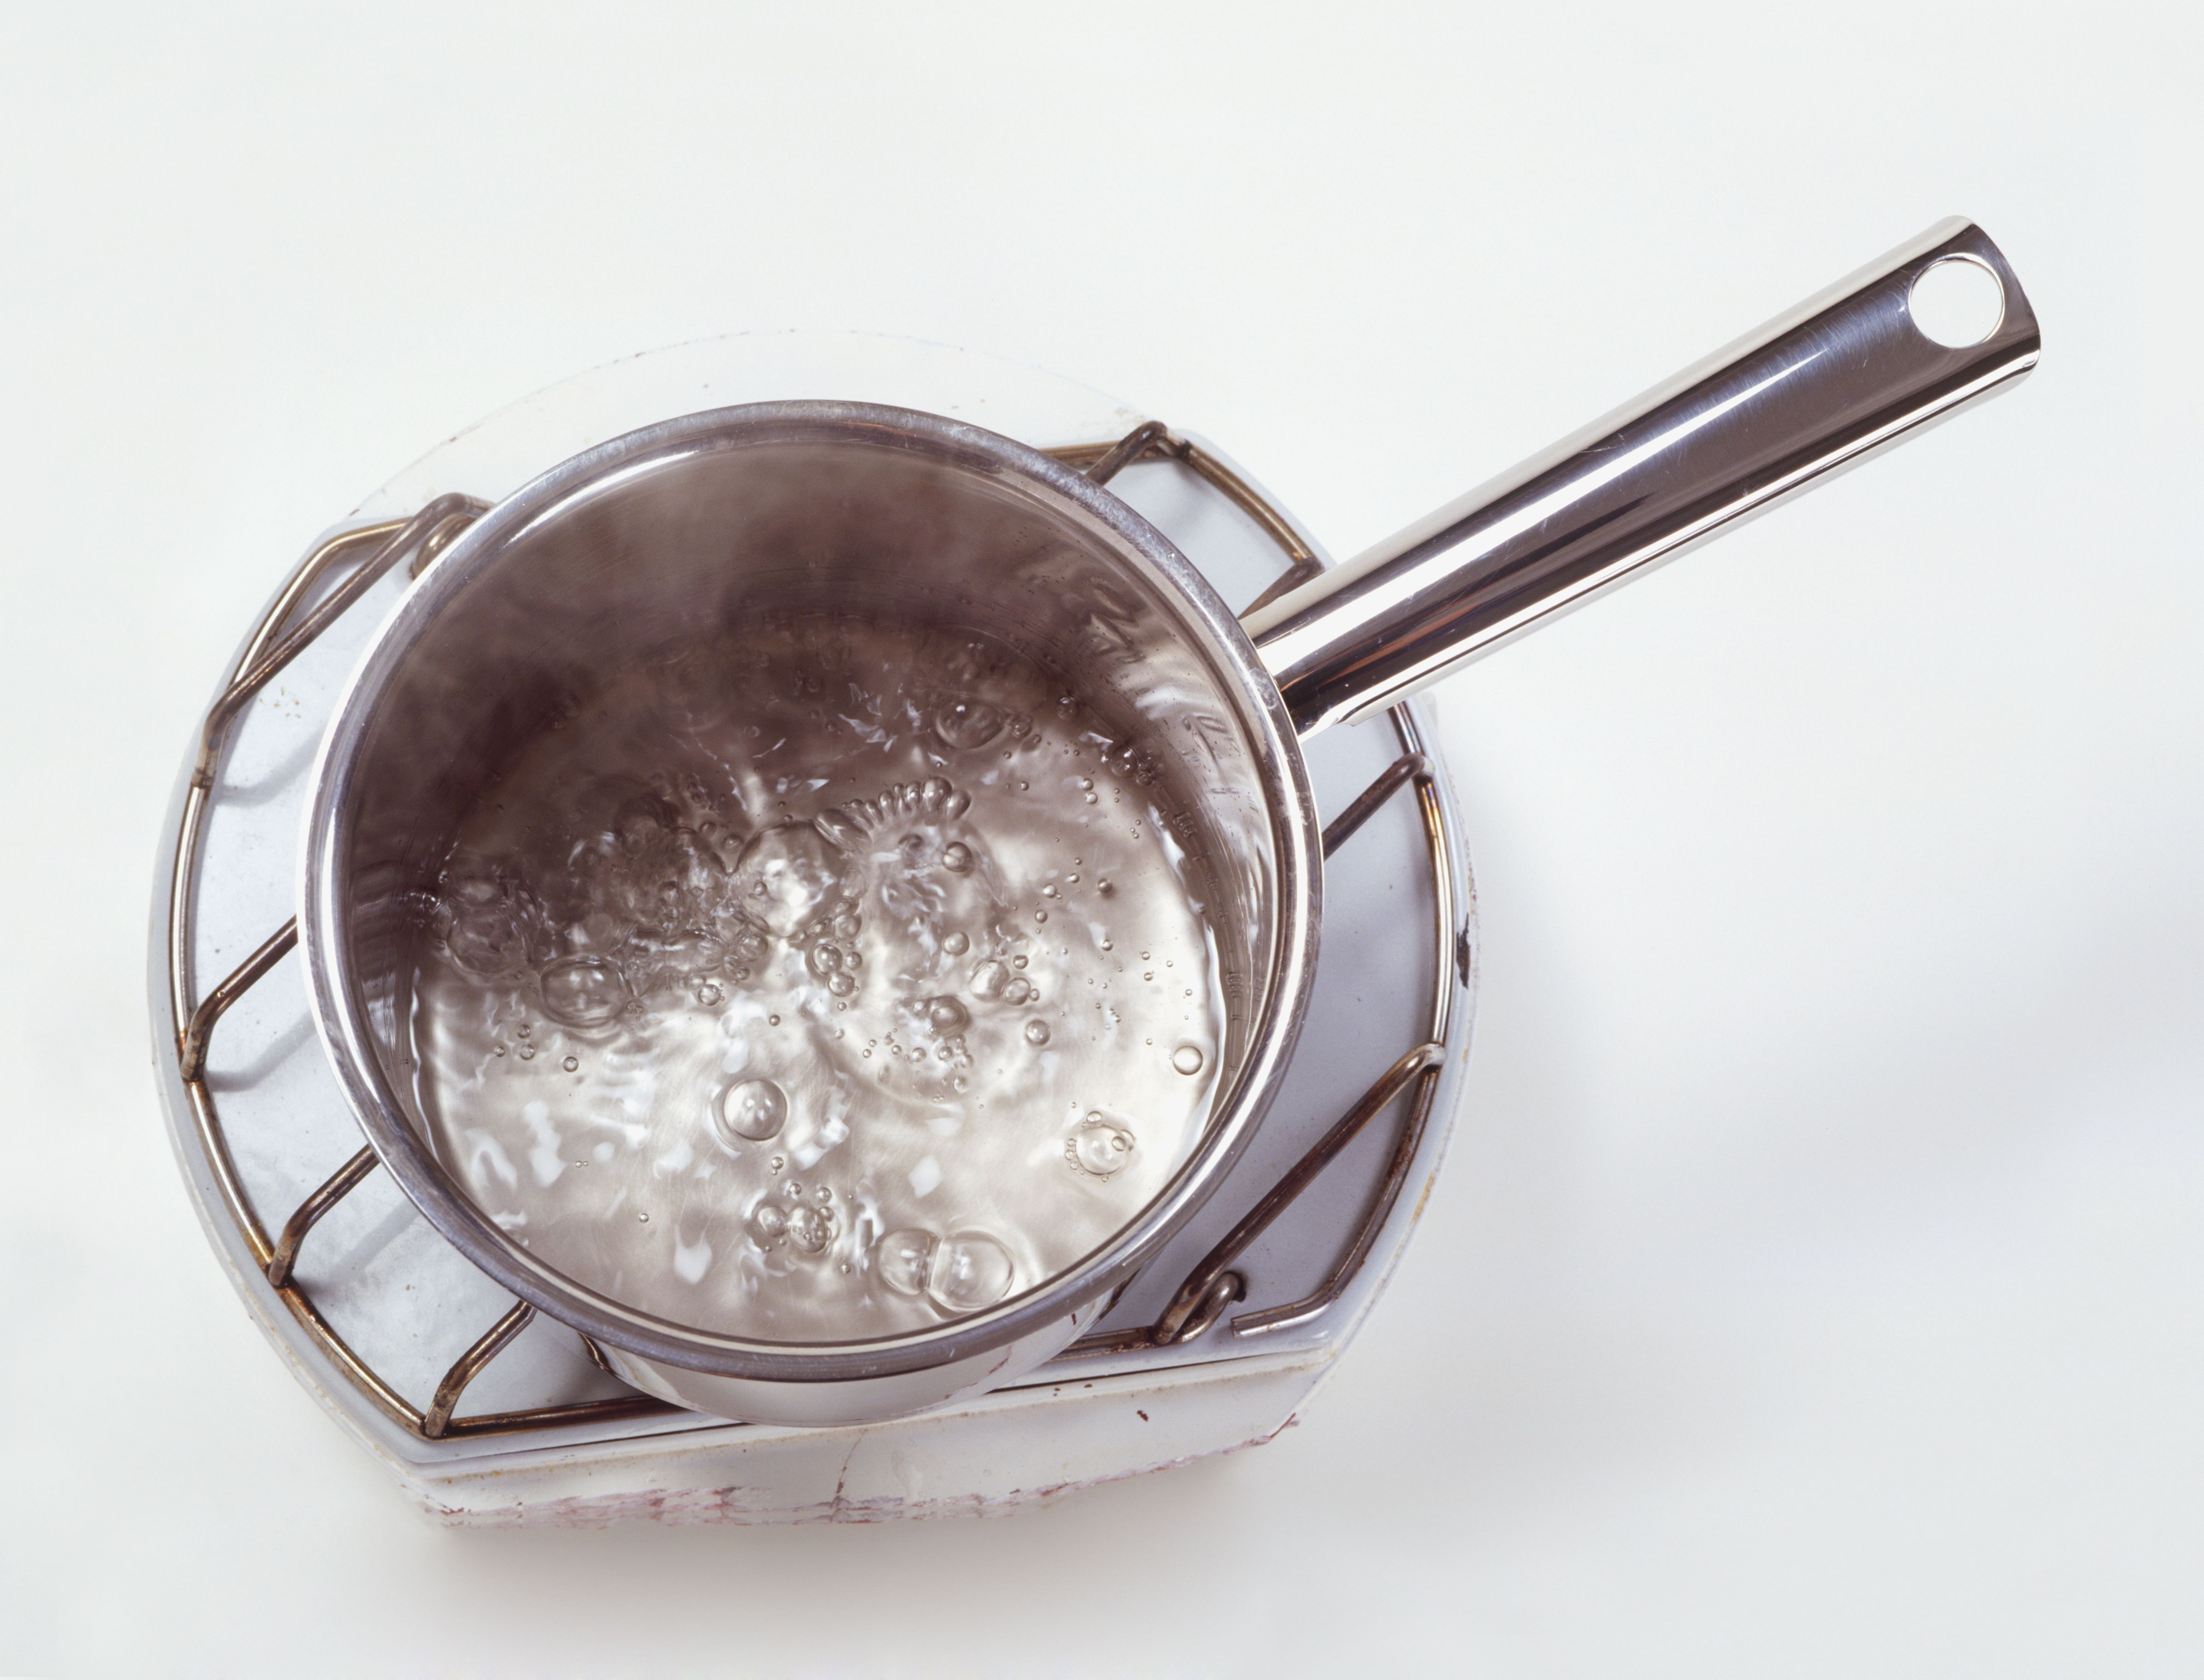 Boiling occurs when the vapor pressure of a liquid exceeds atmospheric pressure.